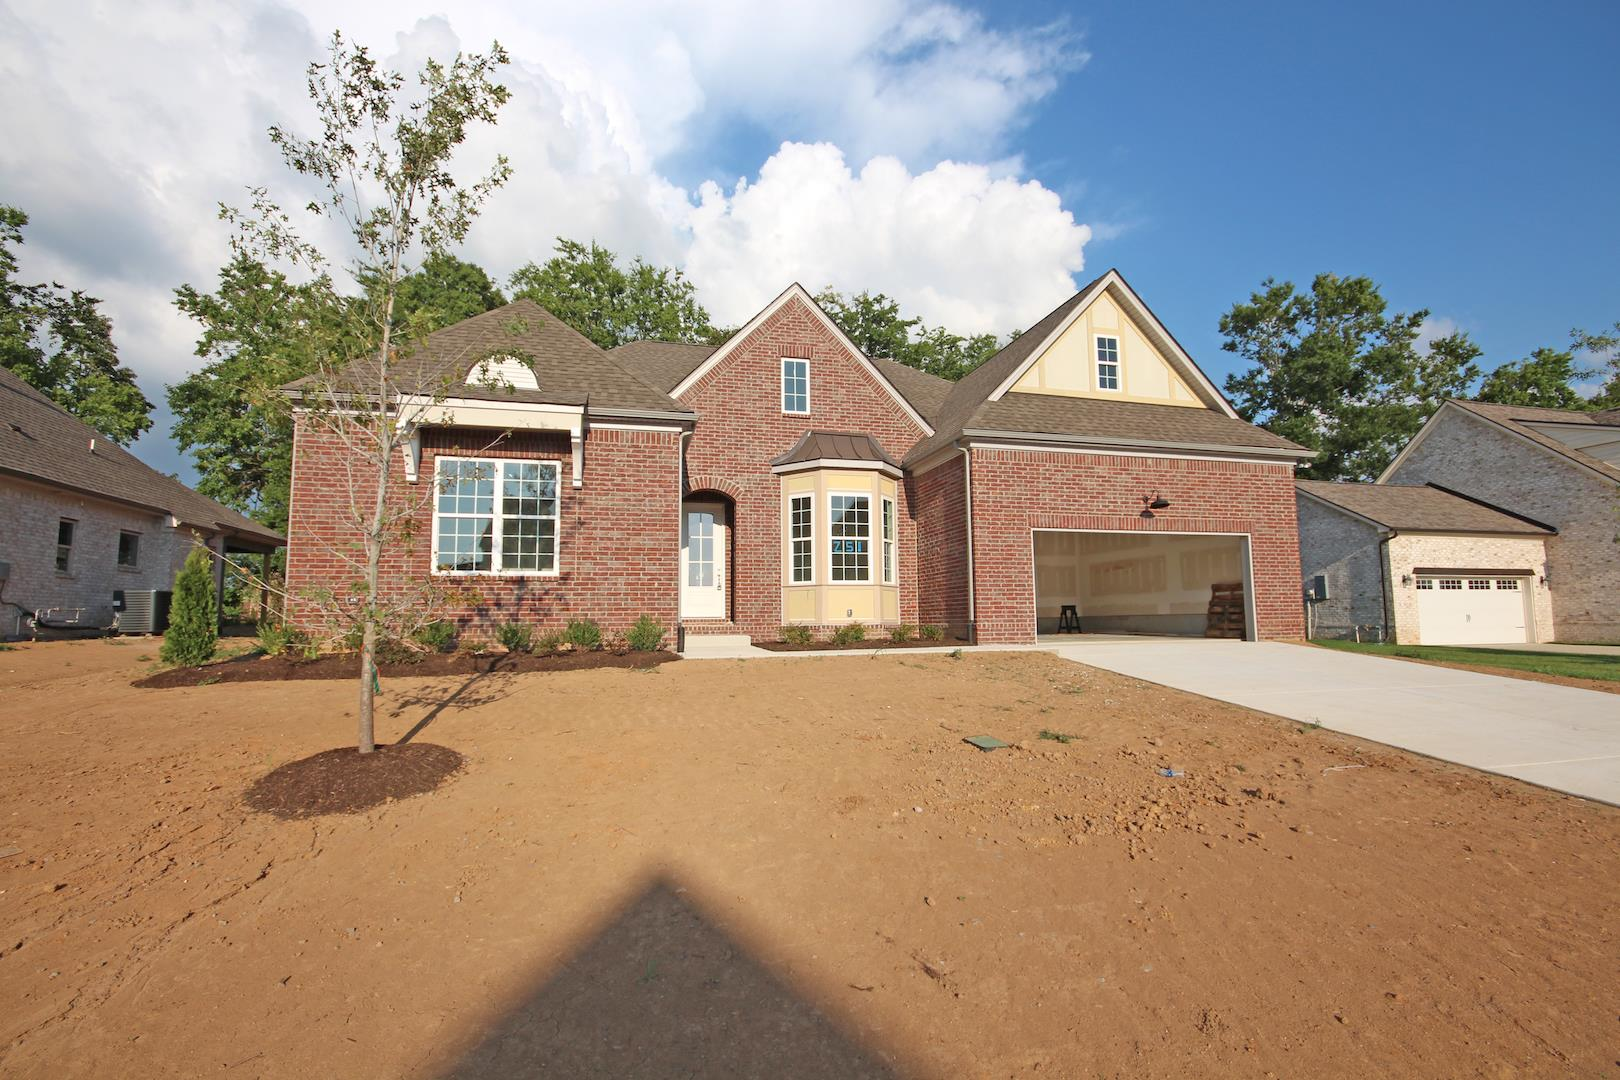 Brixworth Ph3 Sec1 Real Estate Listings Main Image